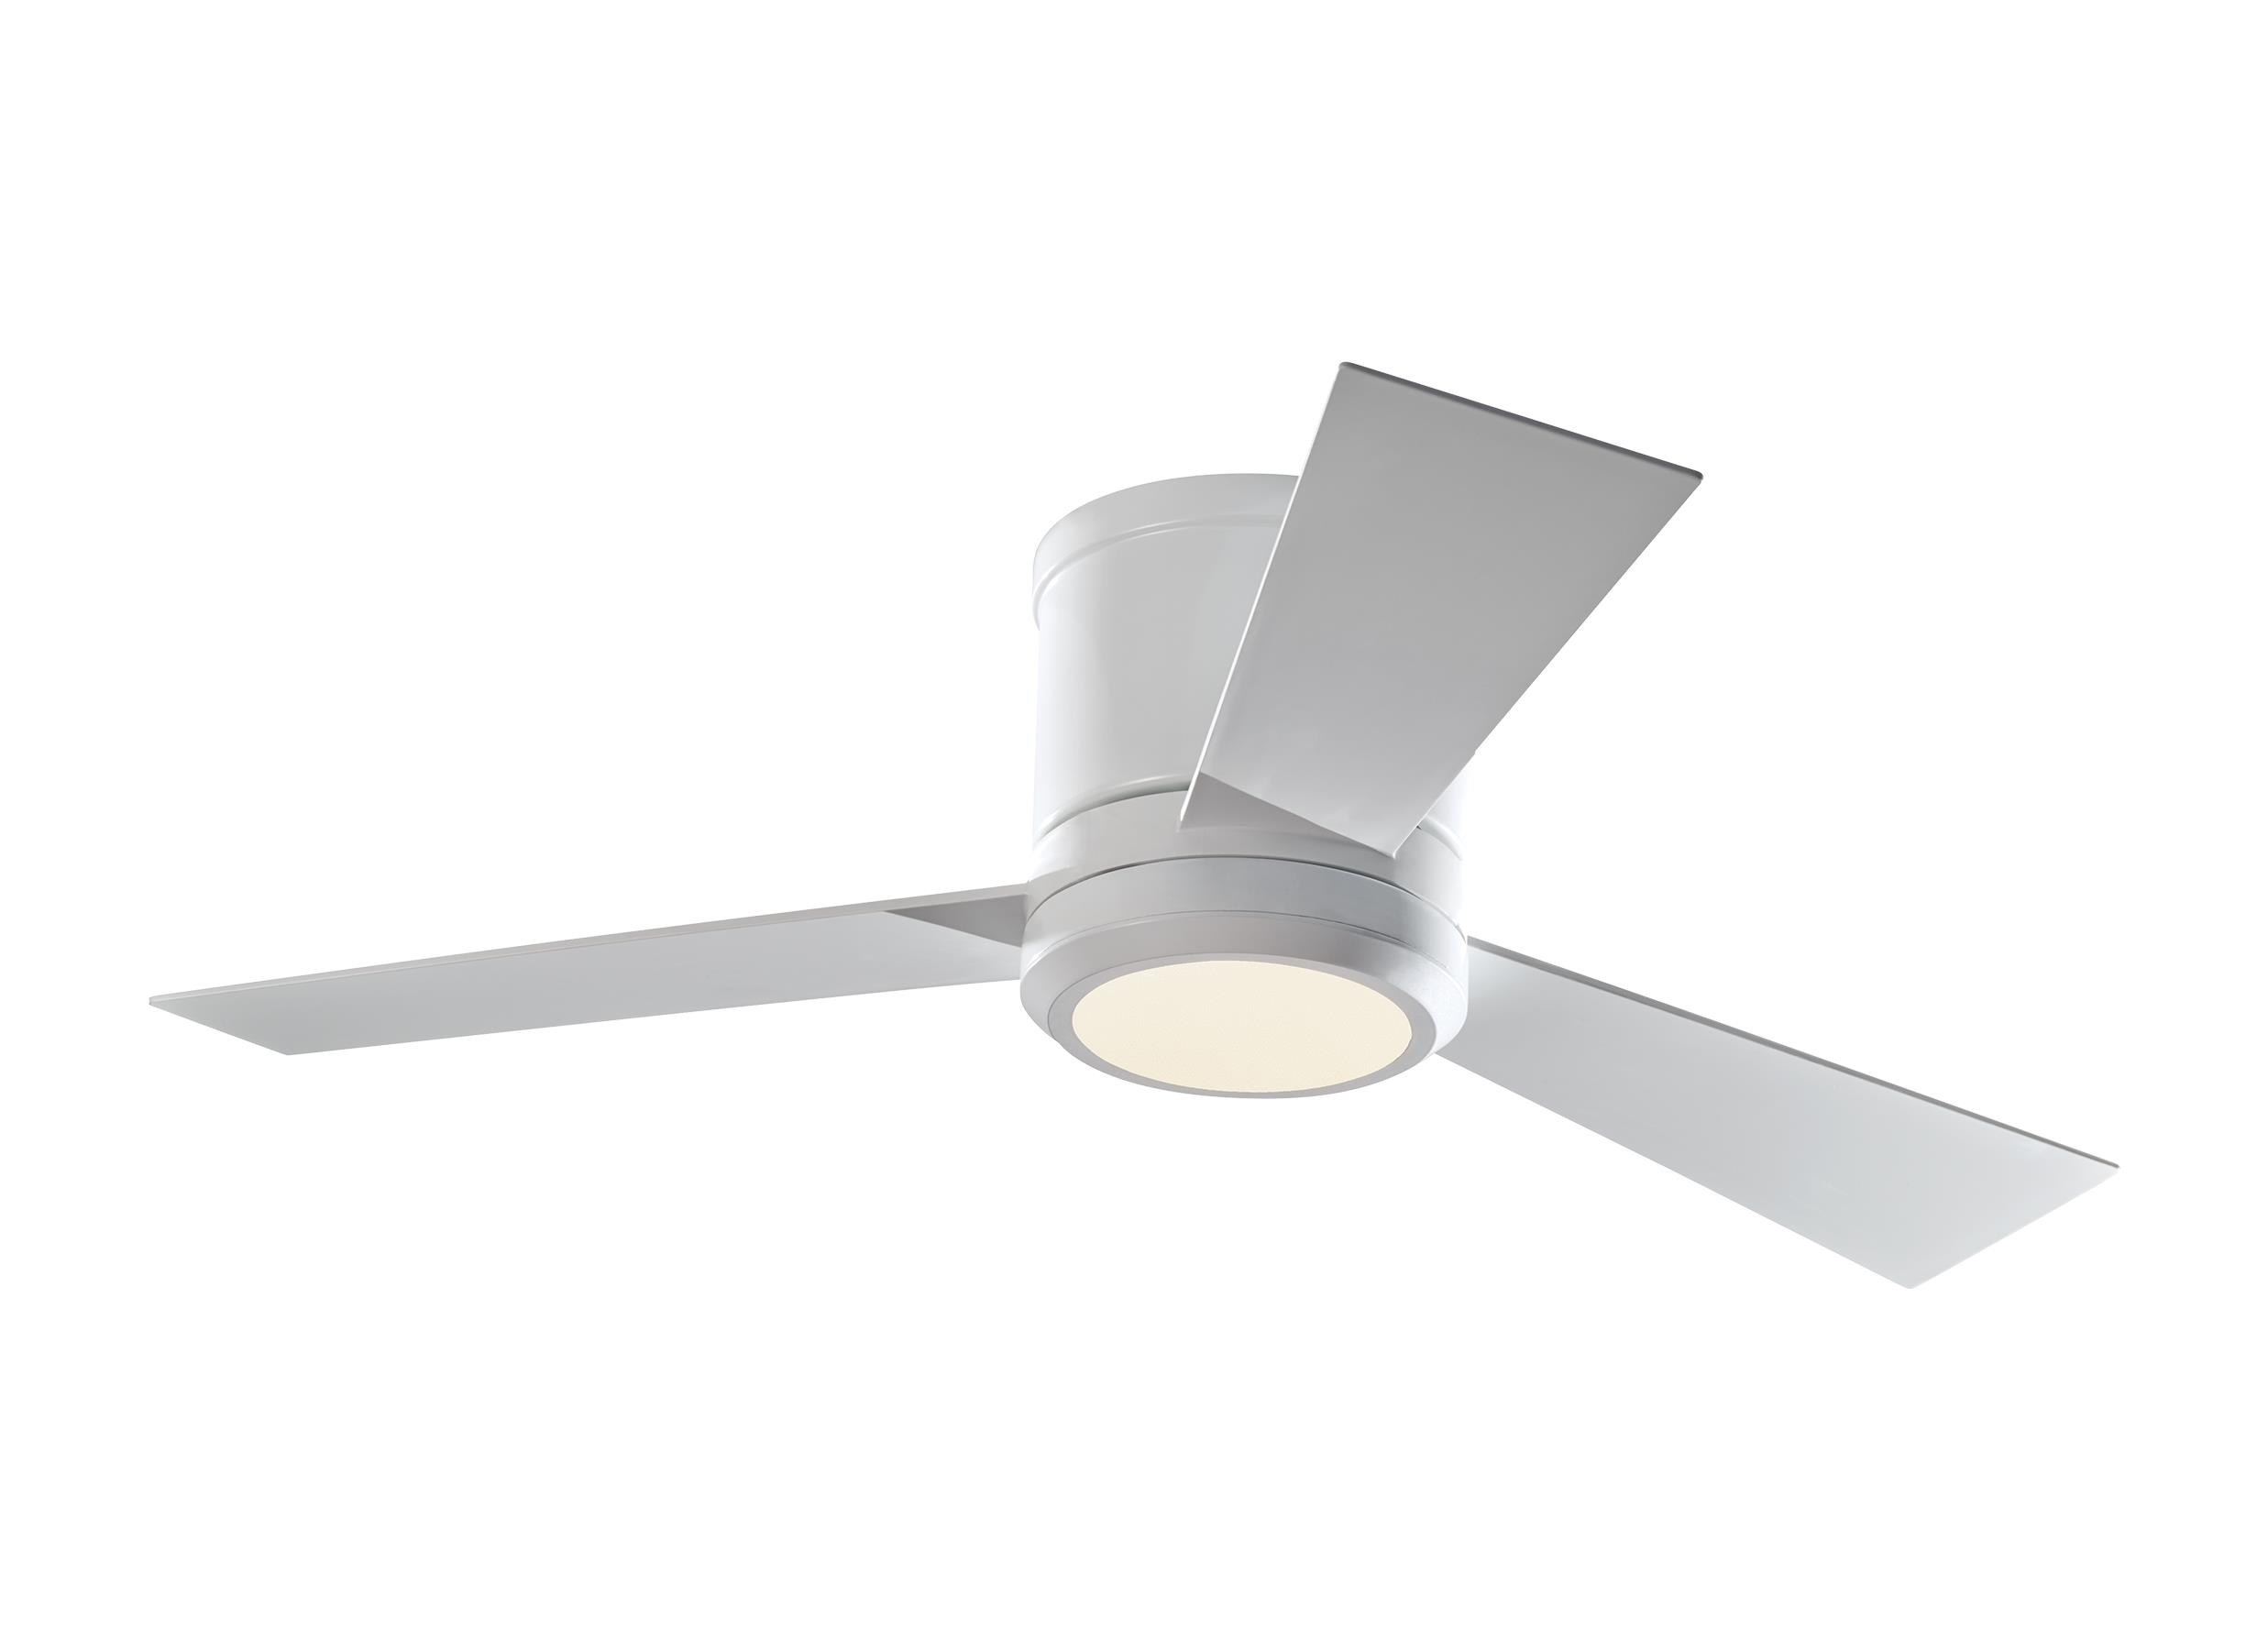 nexa ceiling index fan fans high speed rally white spped